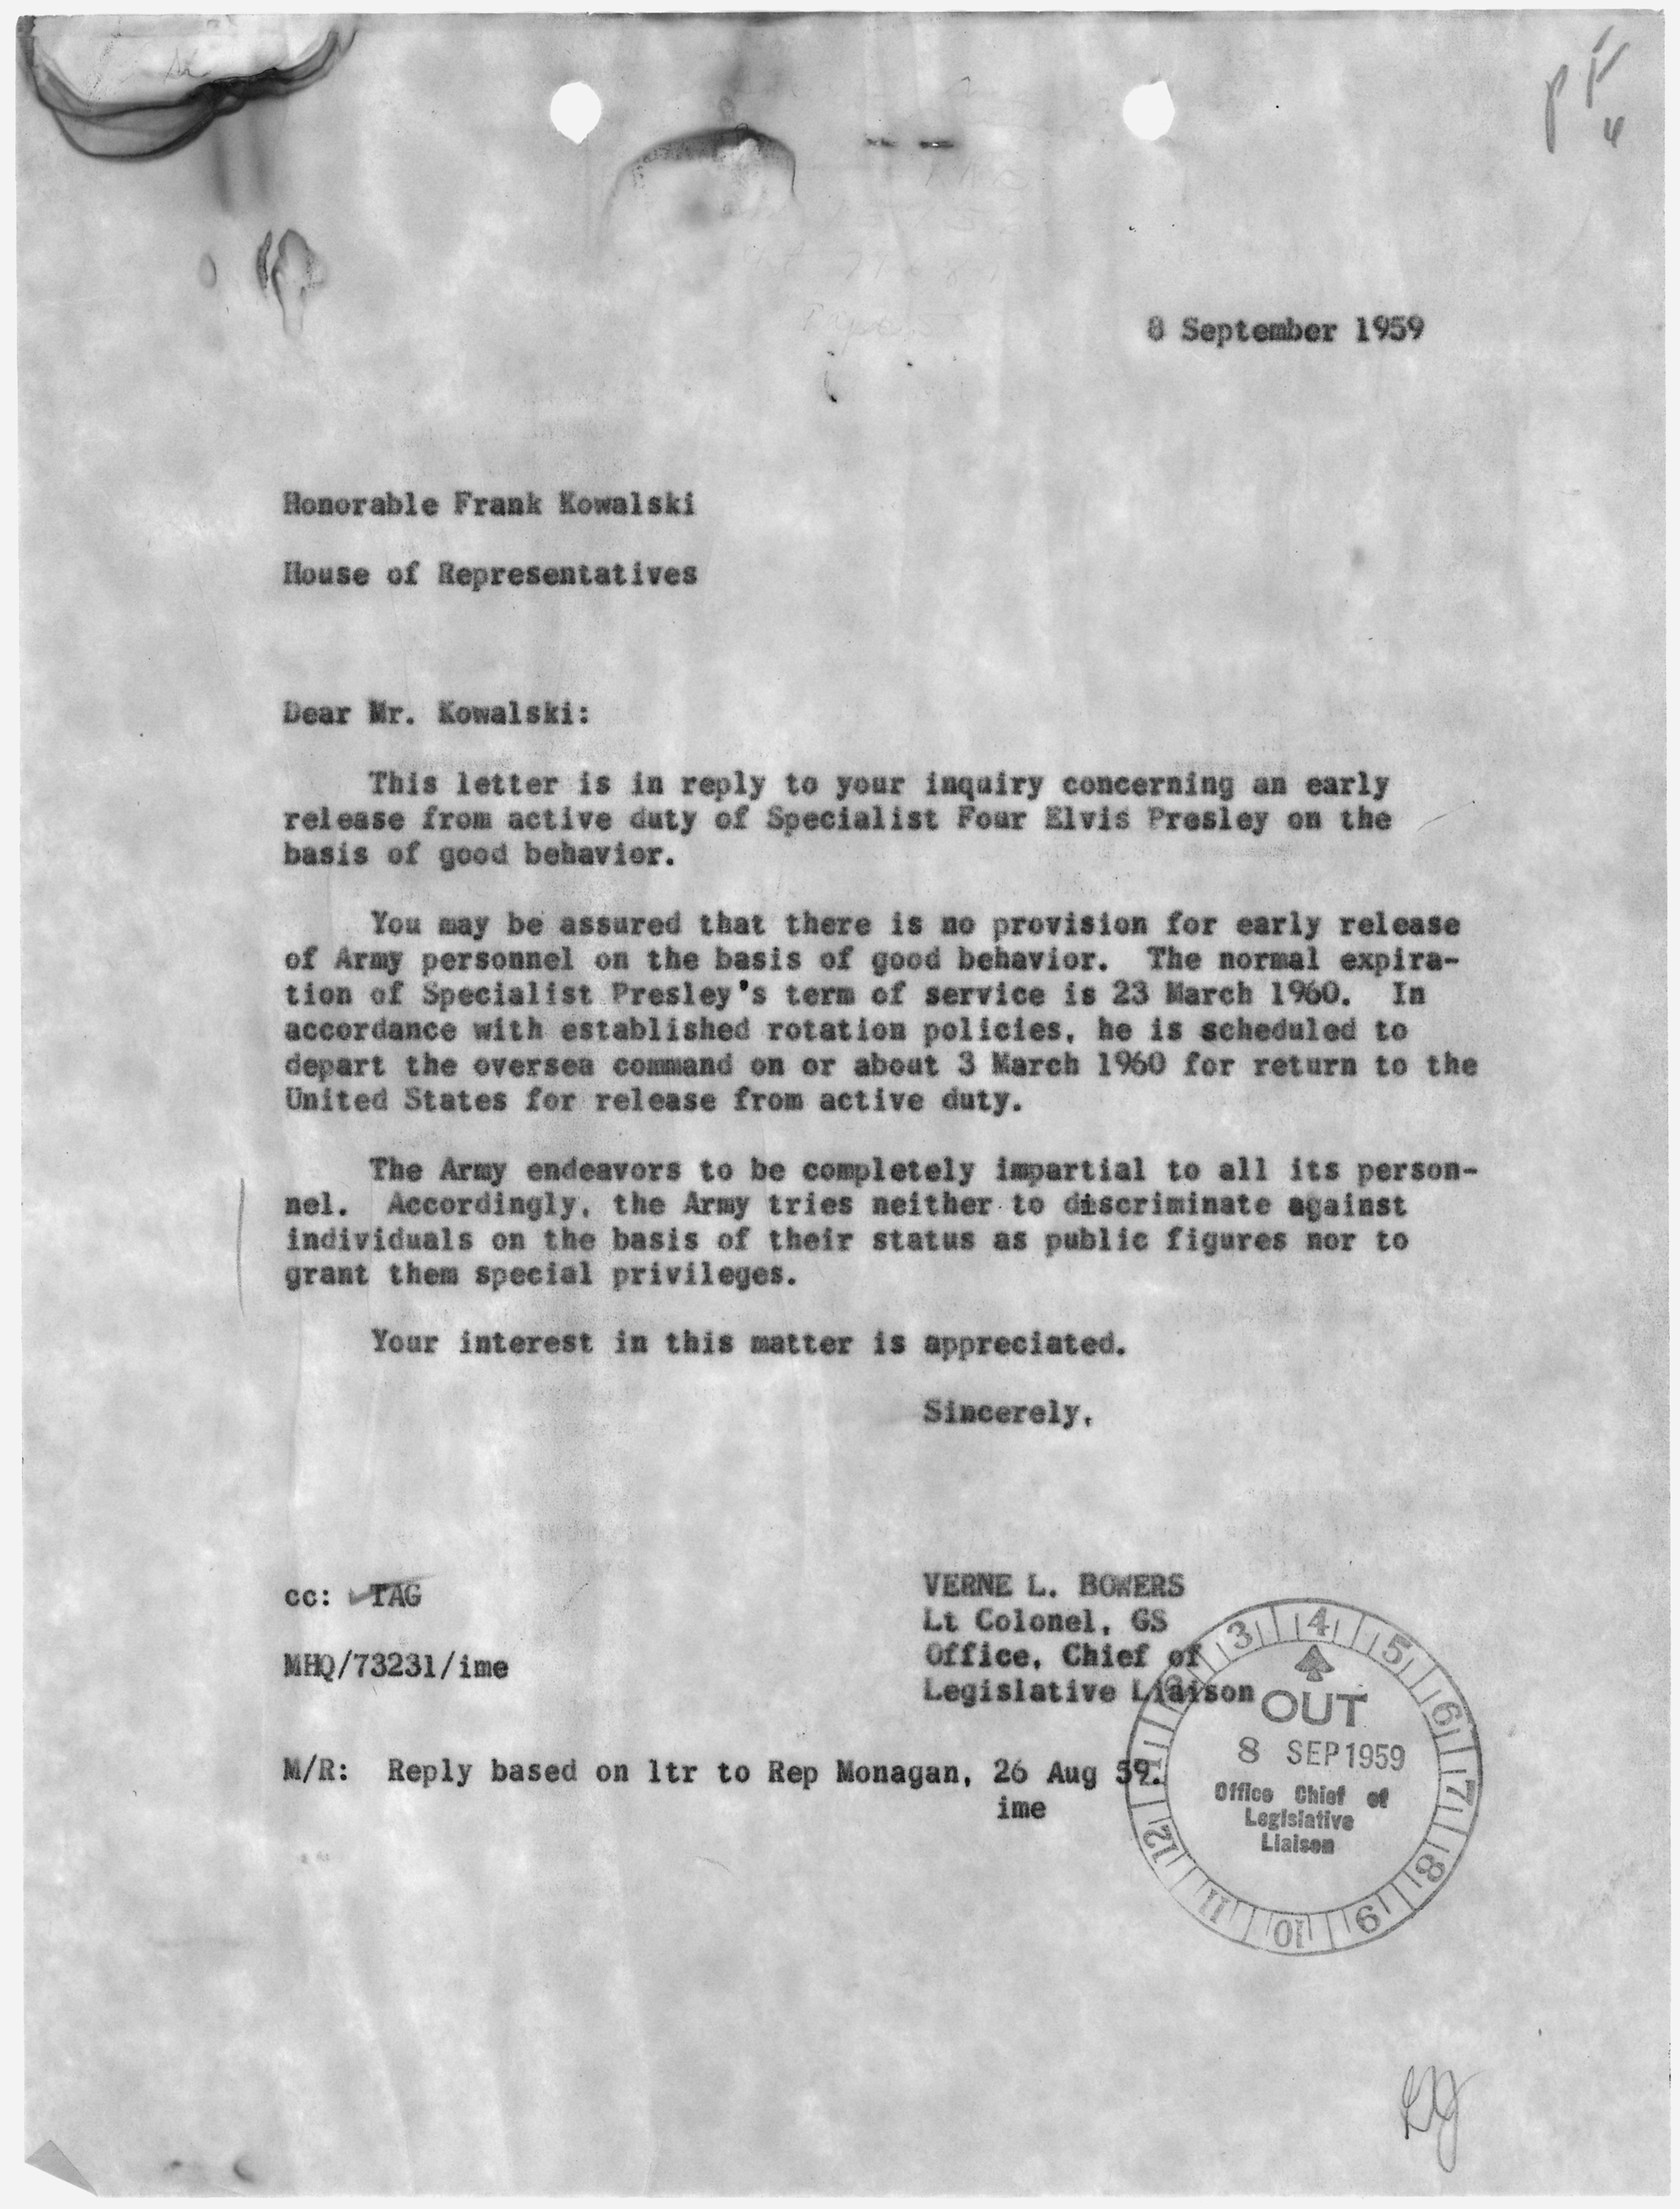 File:Letter from Lt Colonel Verne L. Bowers to the